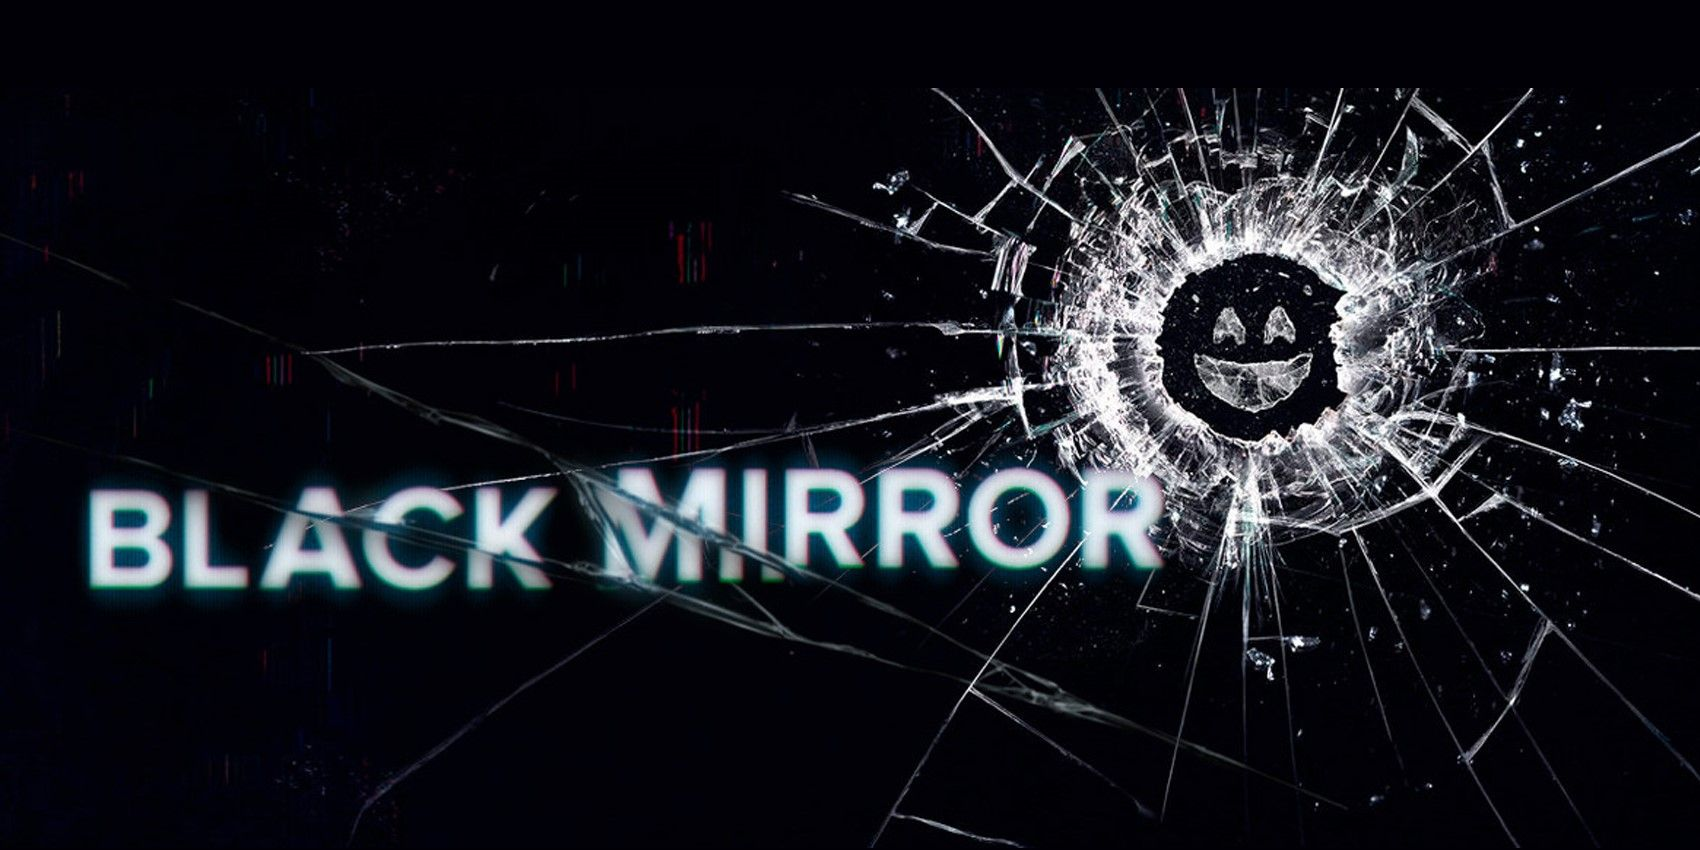 Here's What Netflix's Black Mirror Actors Have Said About Working On The Show